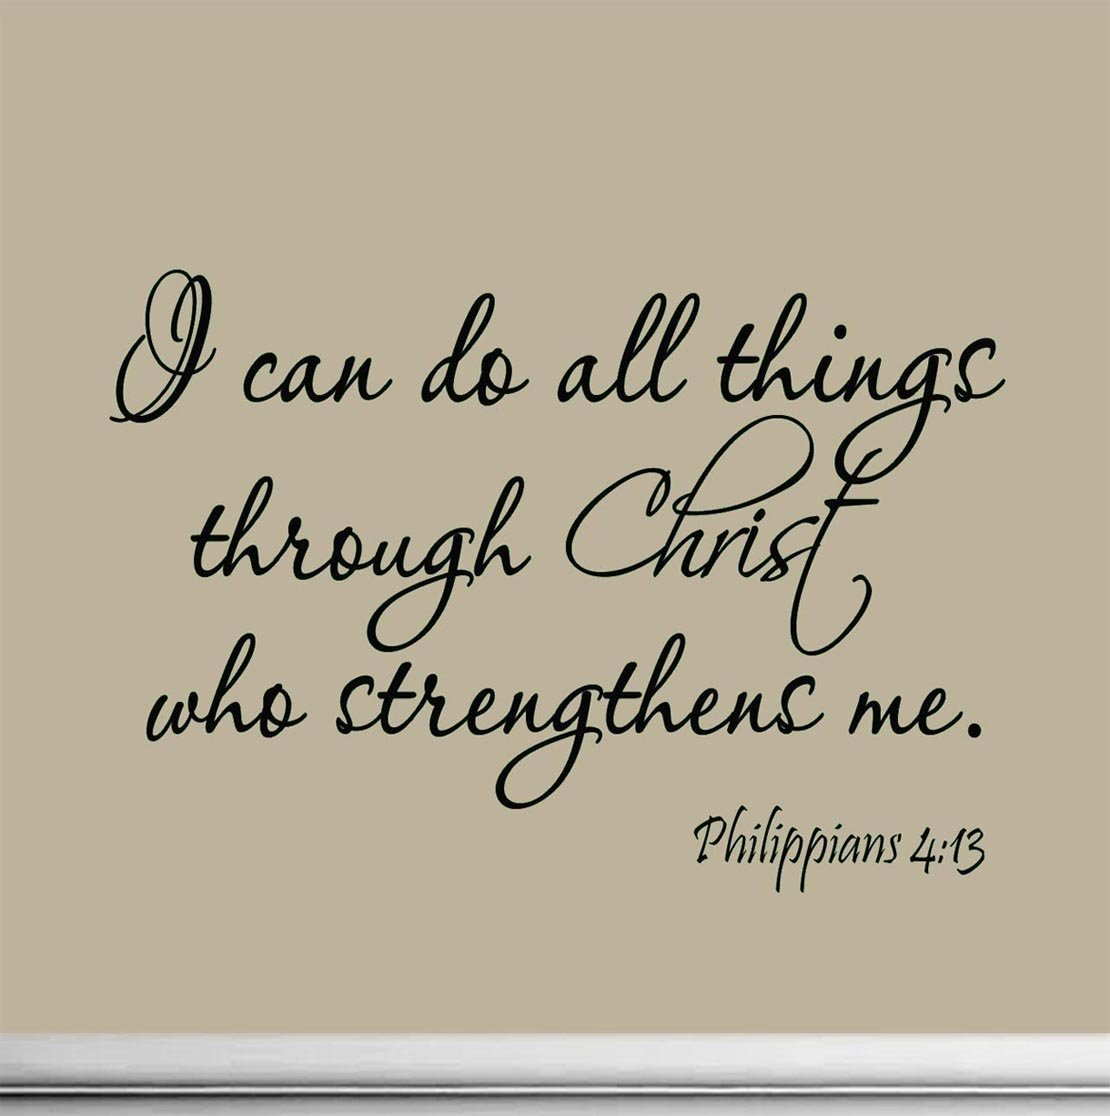 amazon com i can do all things through christ who strengthens me amazon com i can do all things through christ who strengthens me philippians 4 13 wall decal bible scripture christian wall art quote lettering mural home